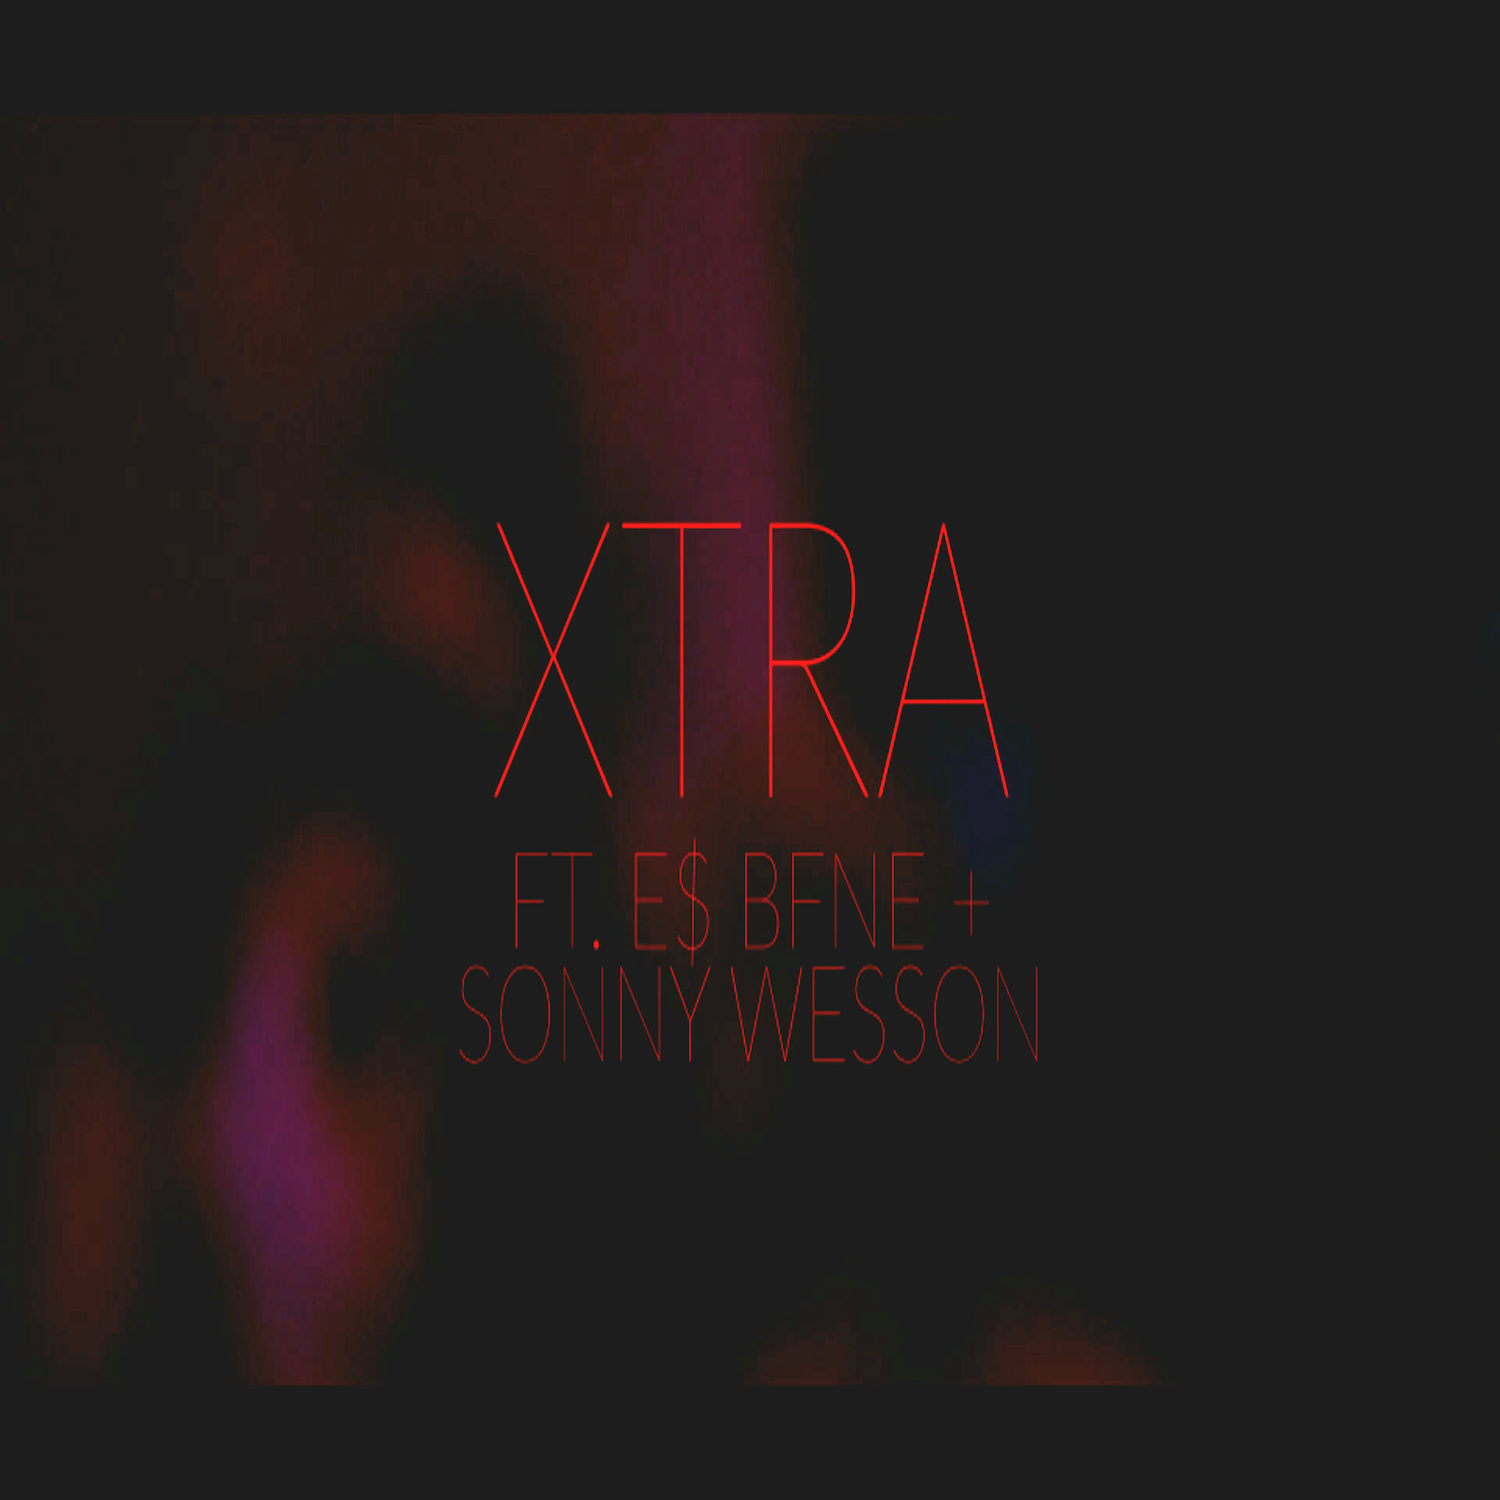 "Sick.Life Feat E$ BFNE & Sonny Wesson – Xtra ""VMG Exclusive"""